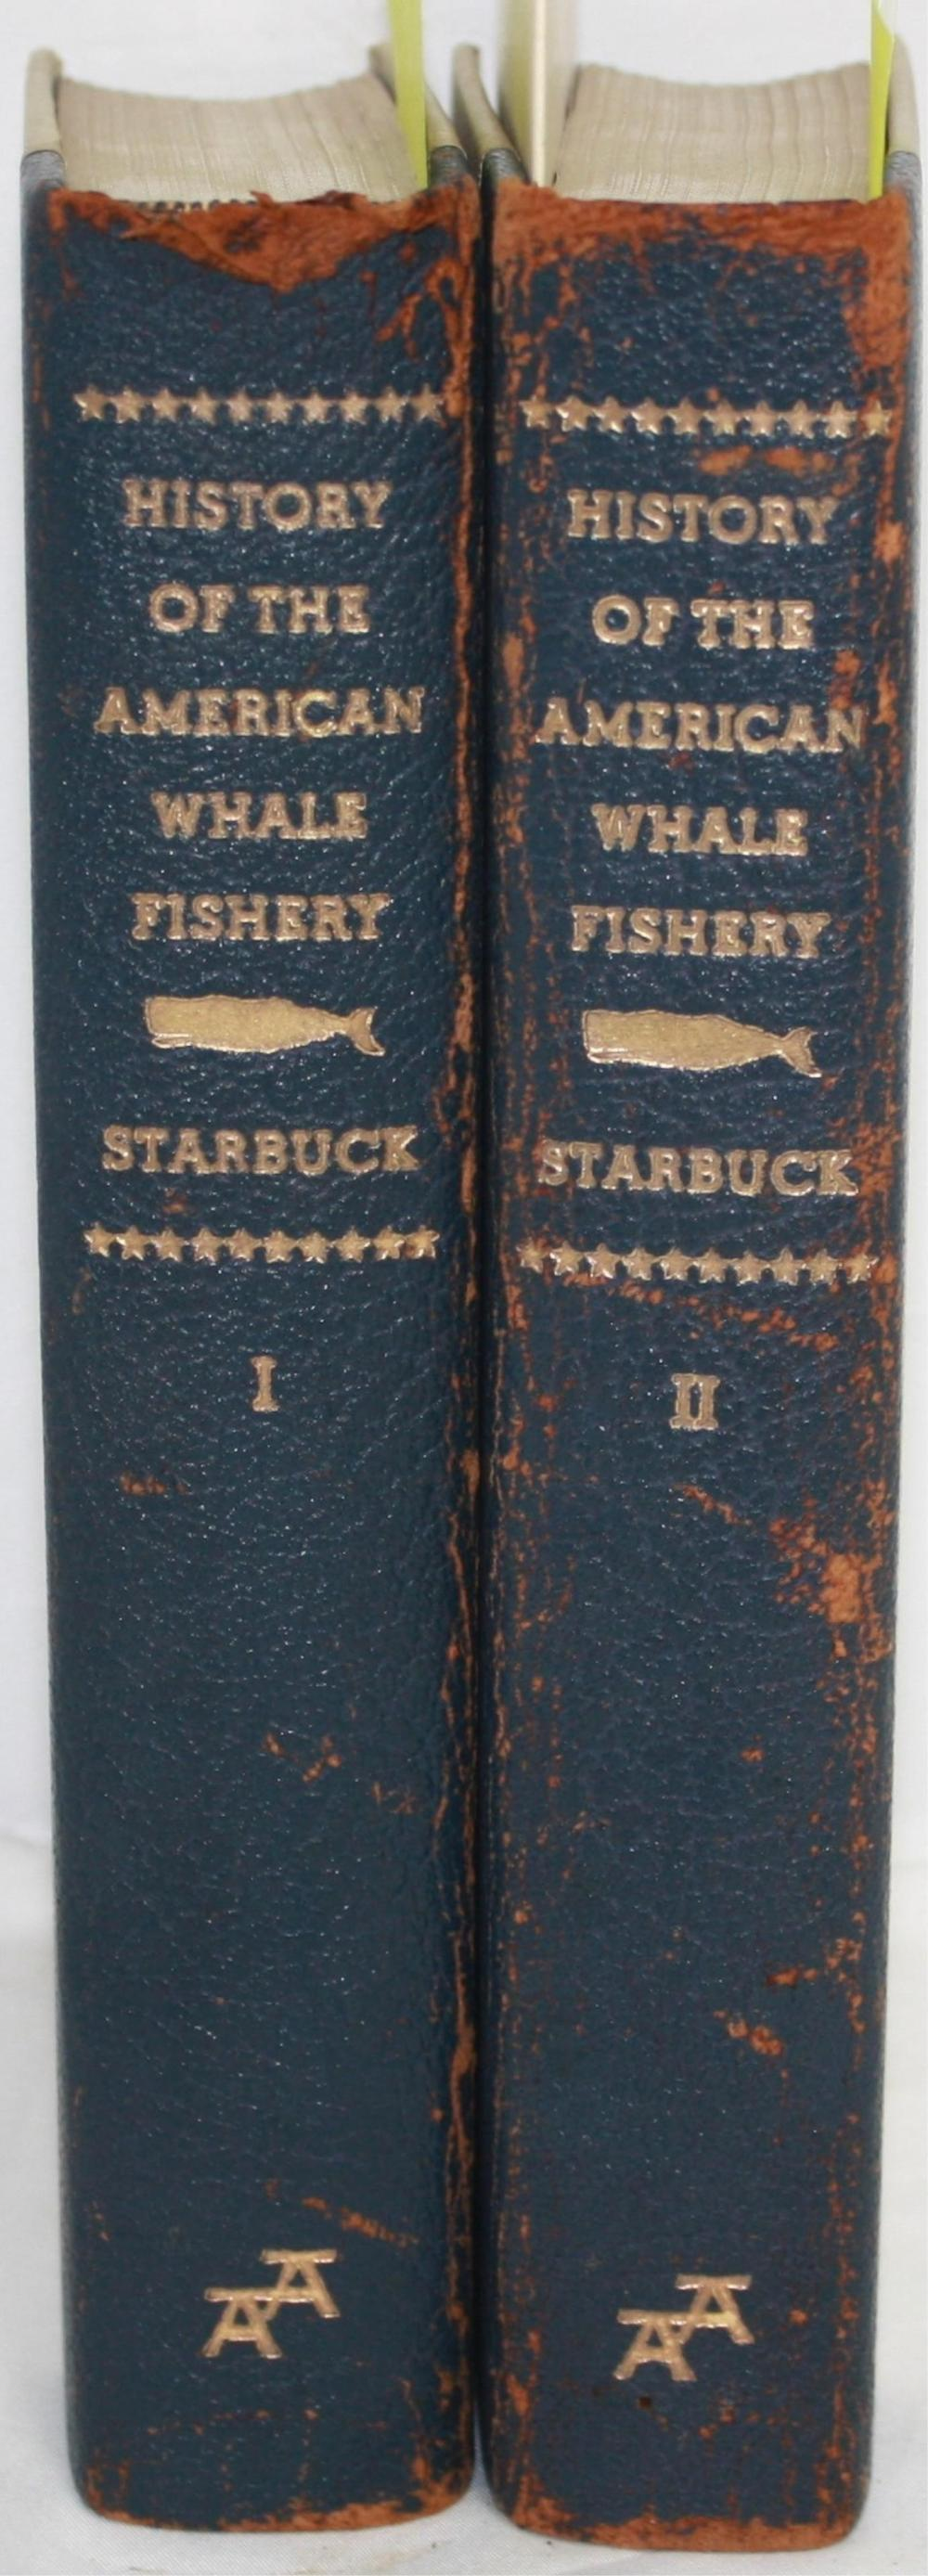 HISTORY OF THE AMERICAN WHALE FISHERY, 2 VOLUME